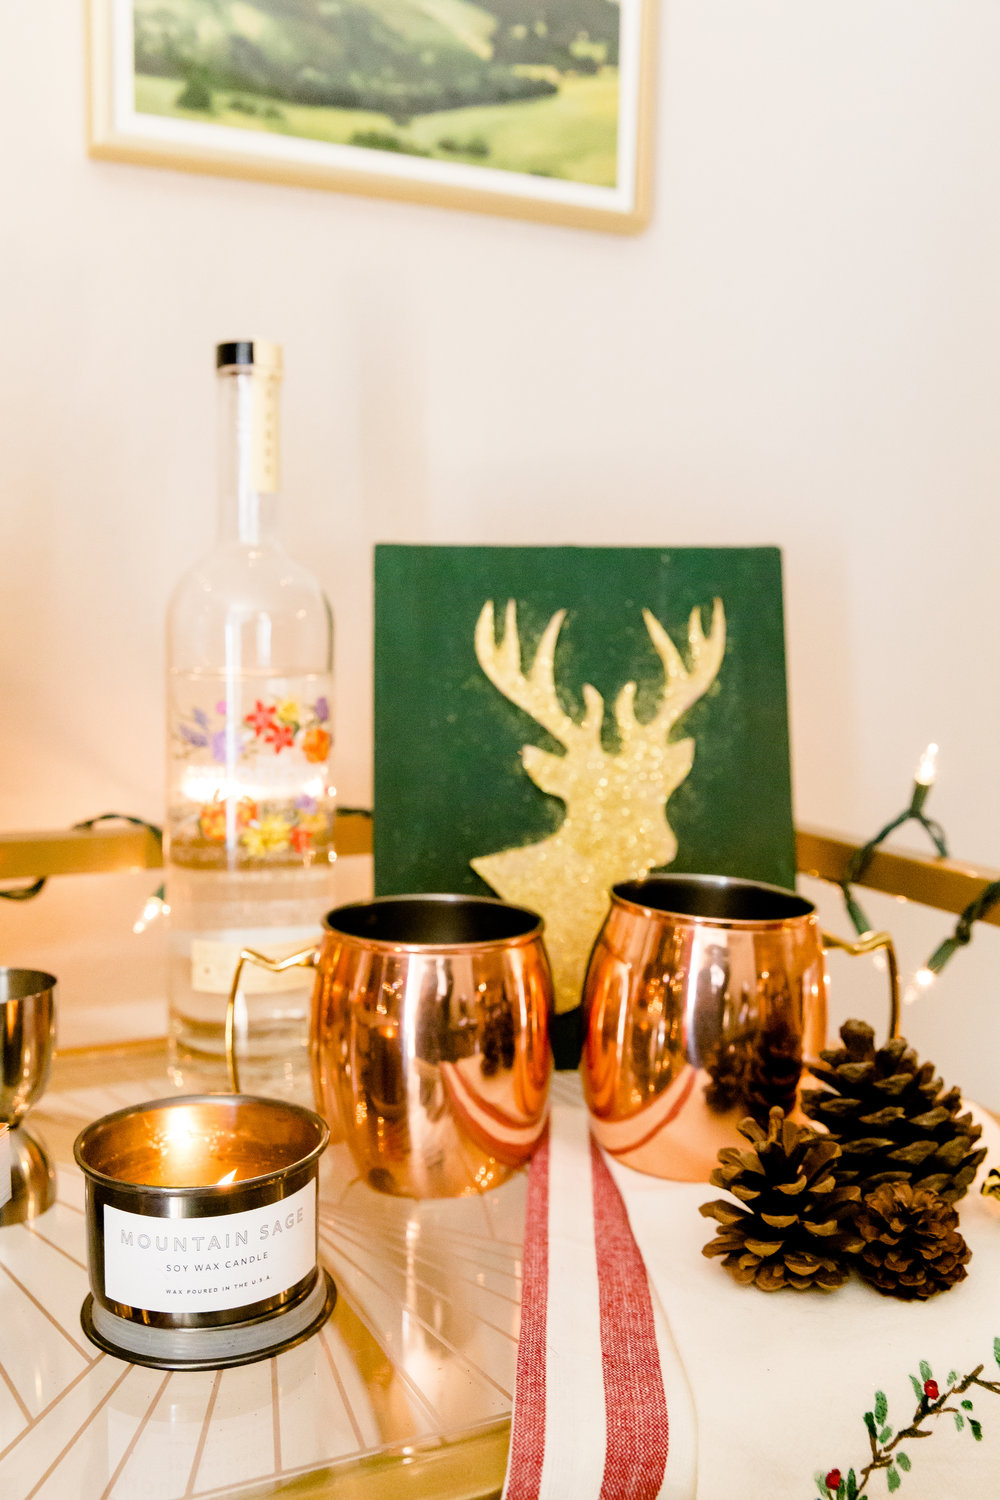 madison katlin photography, madewell candle, christmas bar cart ideas, how to decorate your bar cart, minted